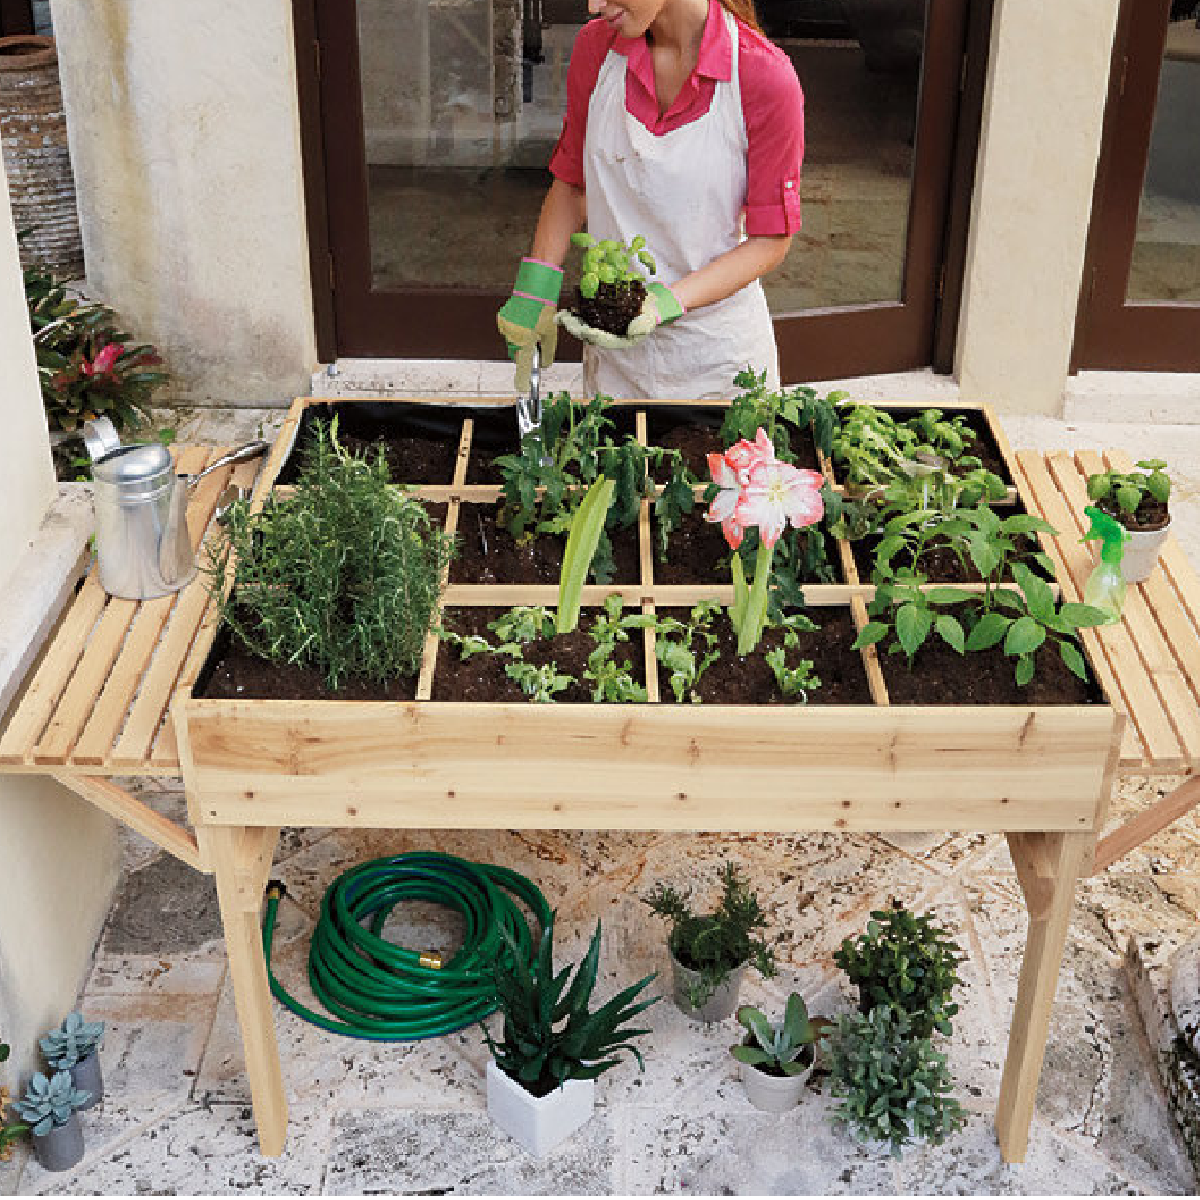 Table de jardinage en hauteur for Creer une table de jardin